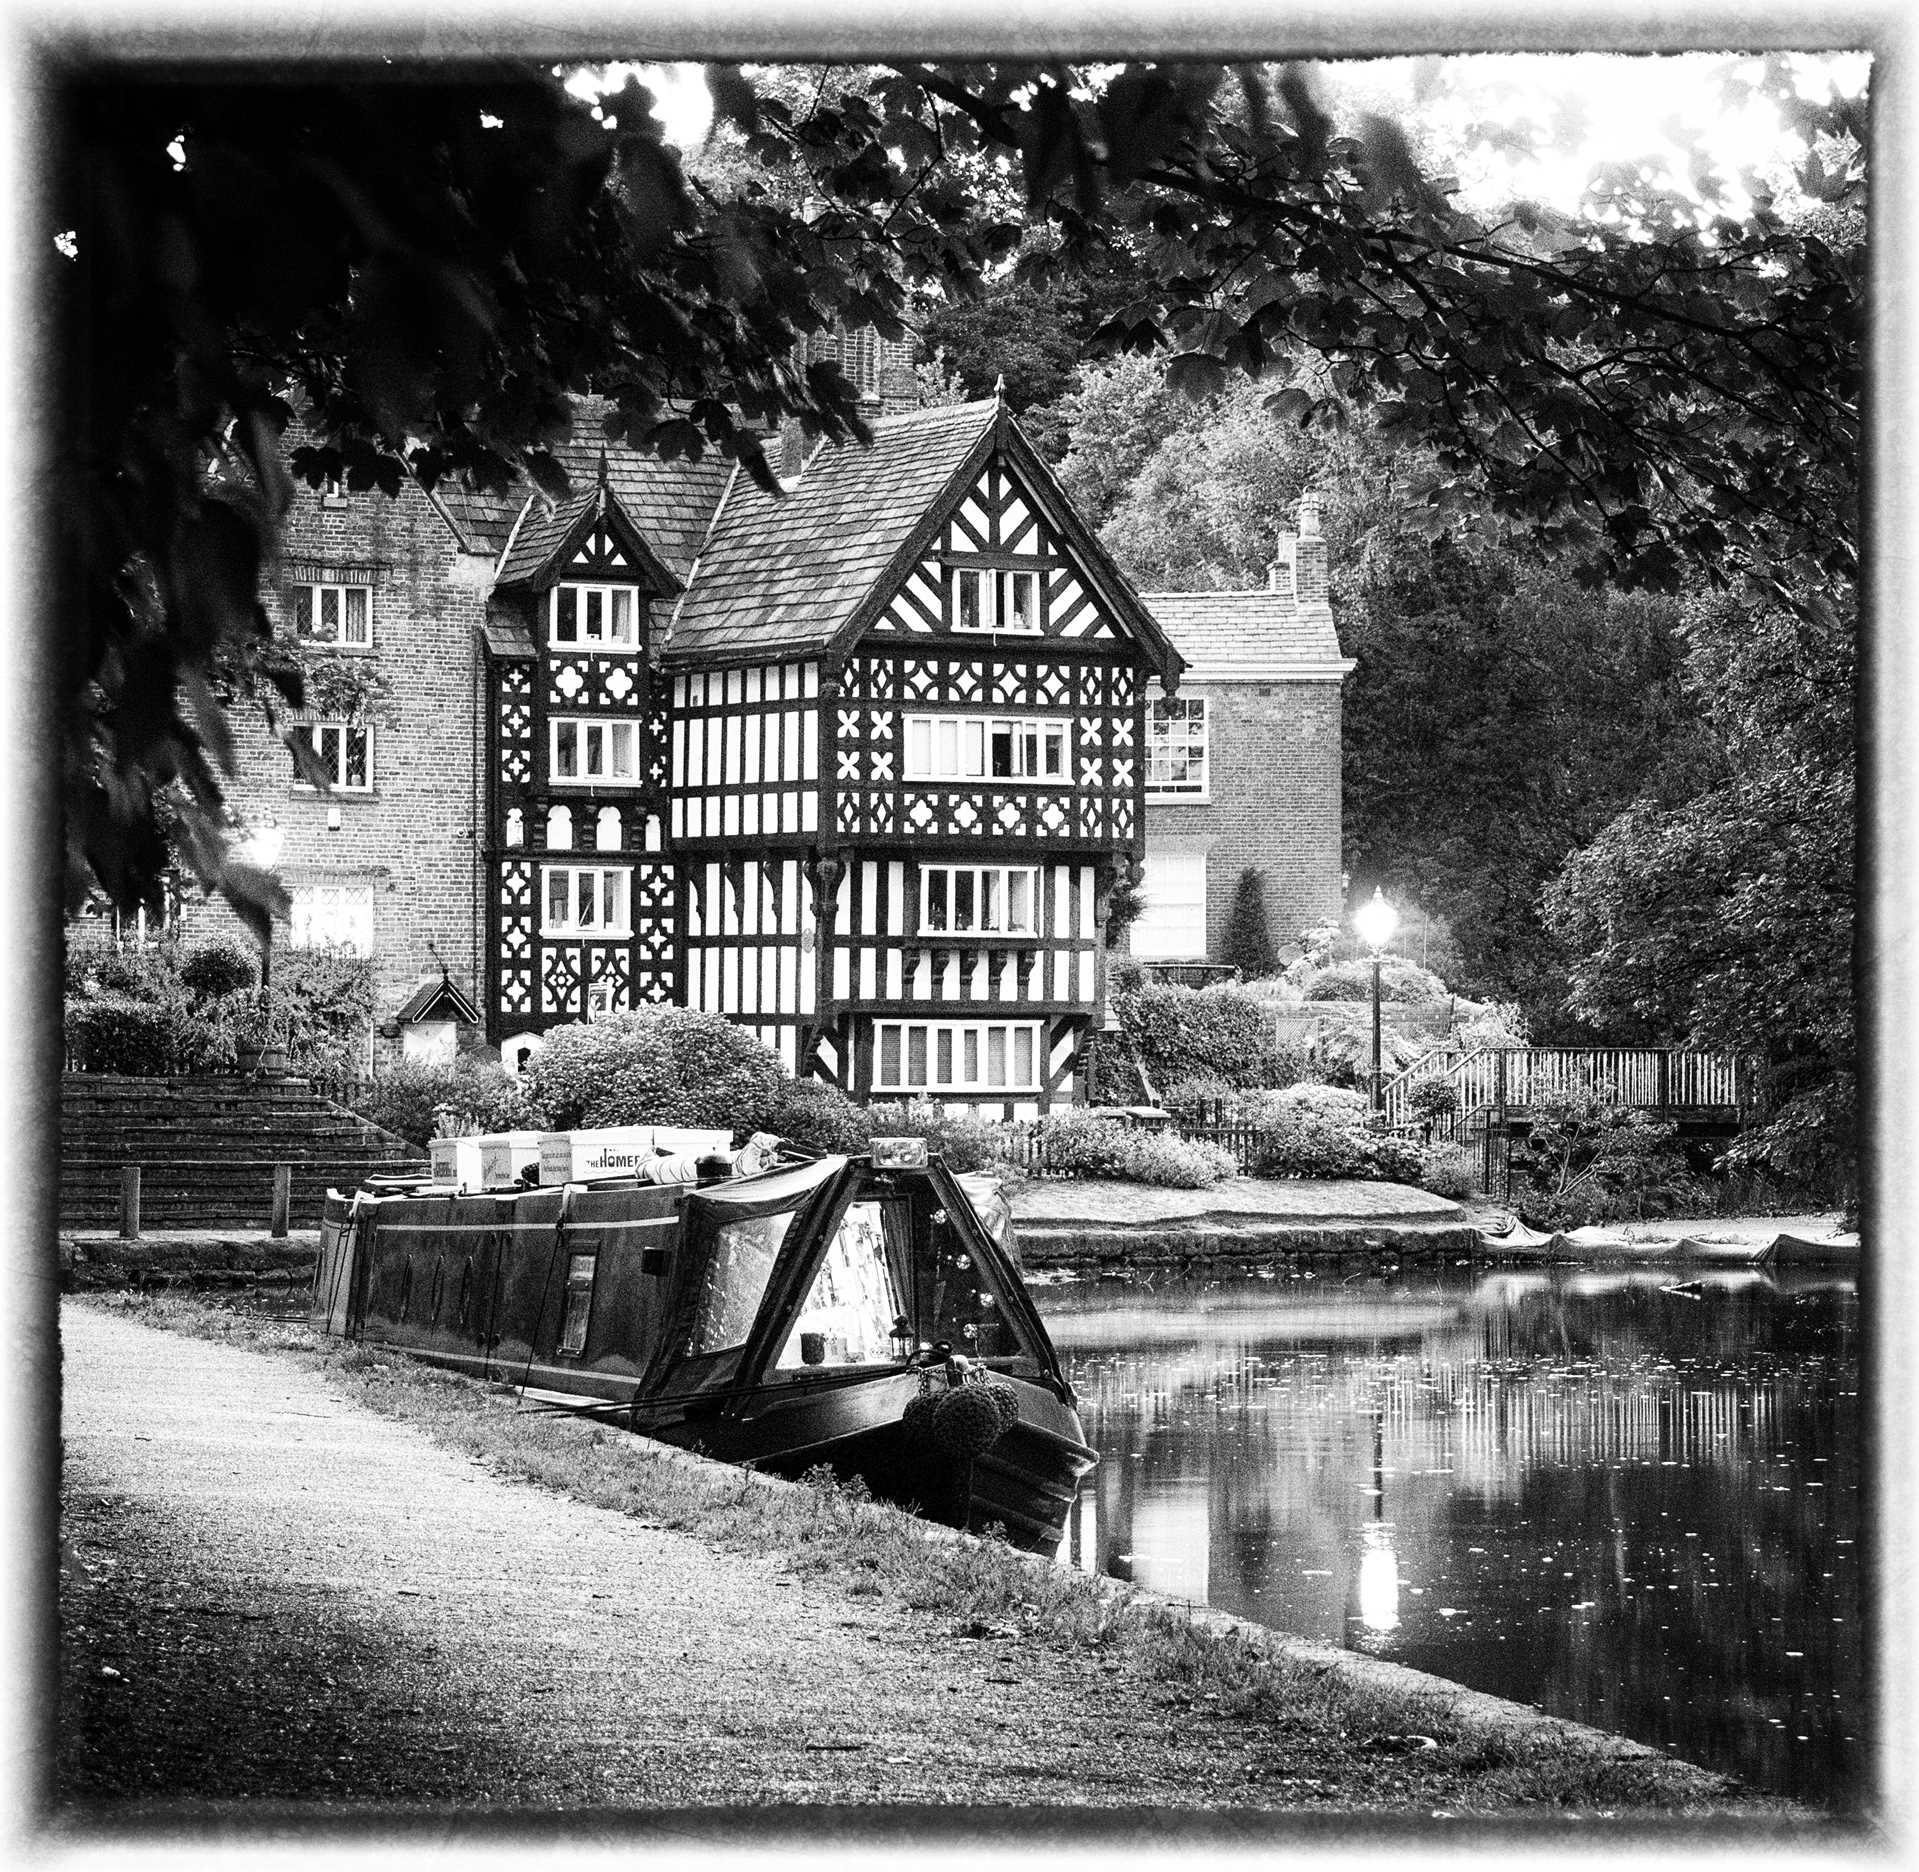 The Packet House Worsley by Barry Teutenberg